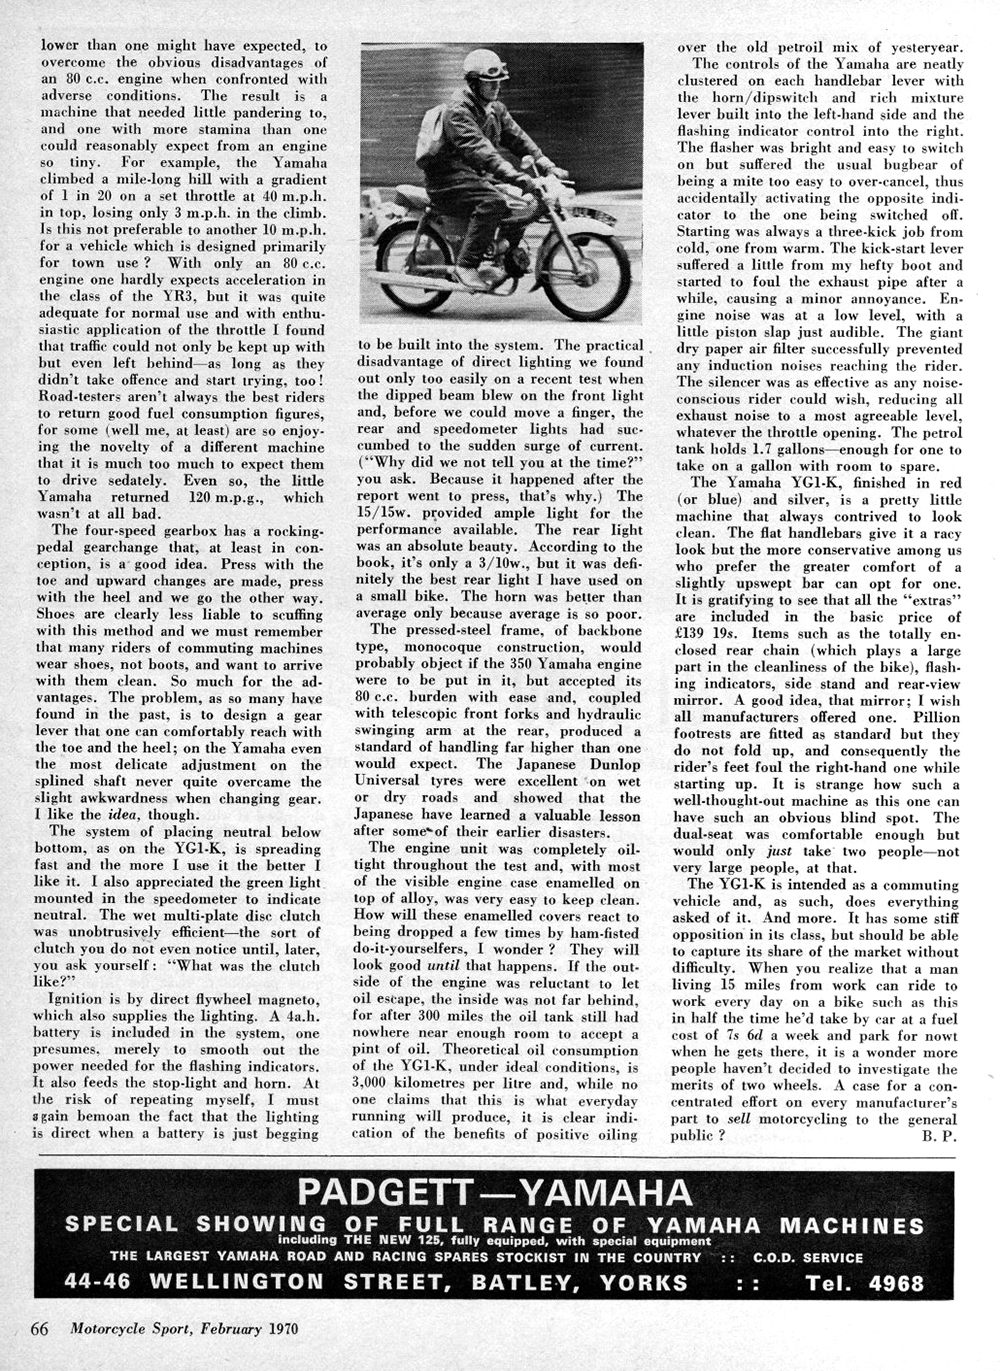 1970 Yamaha YG1-K 80 road test 2.jpg